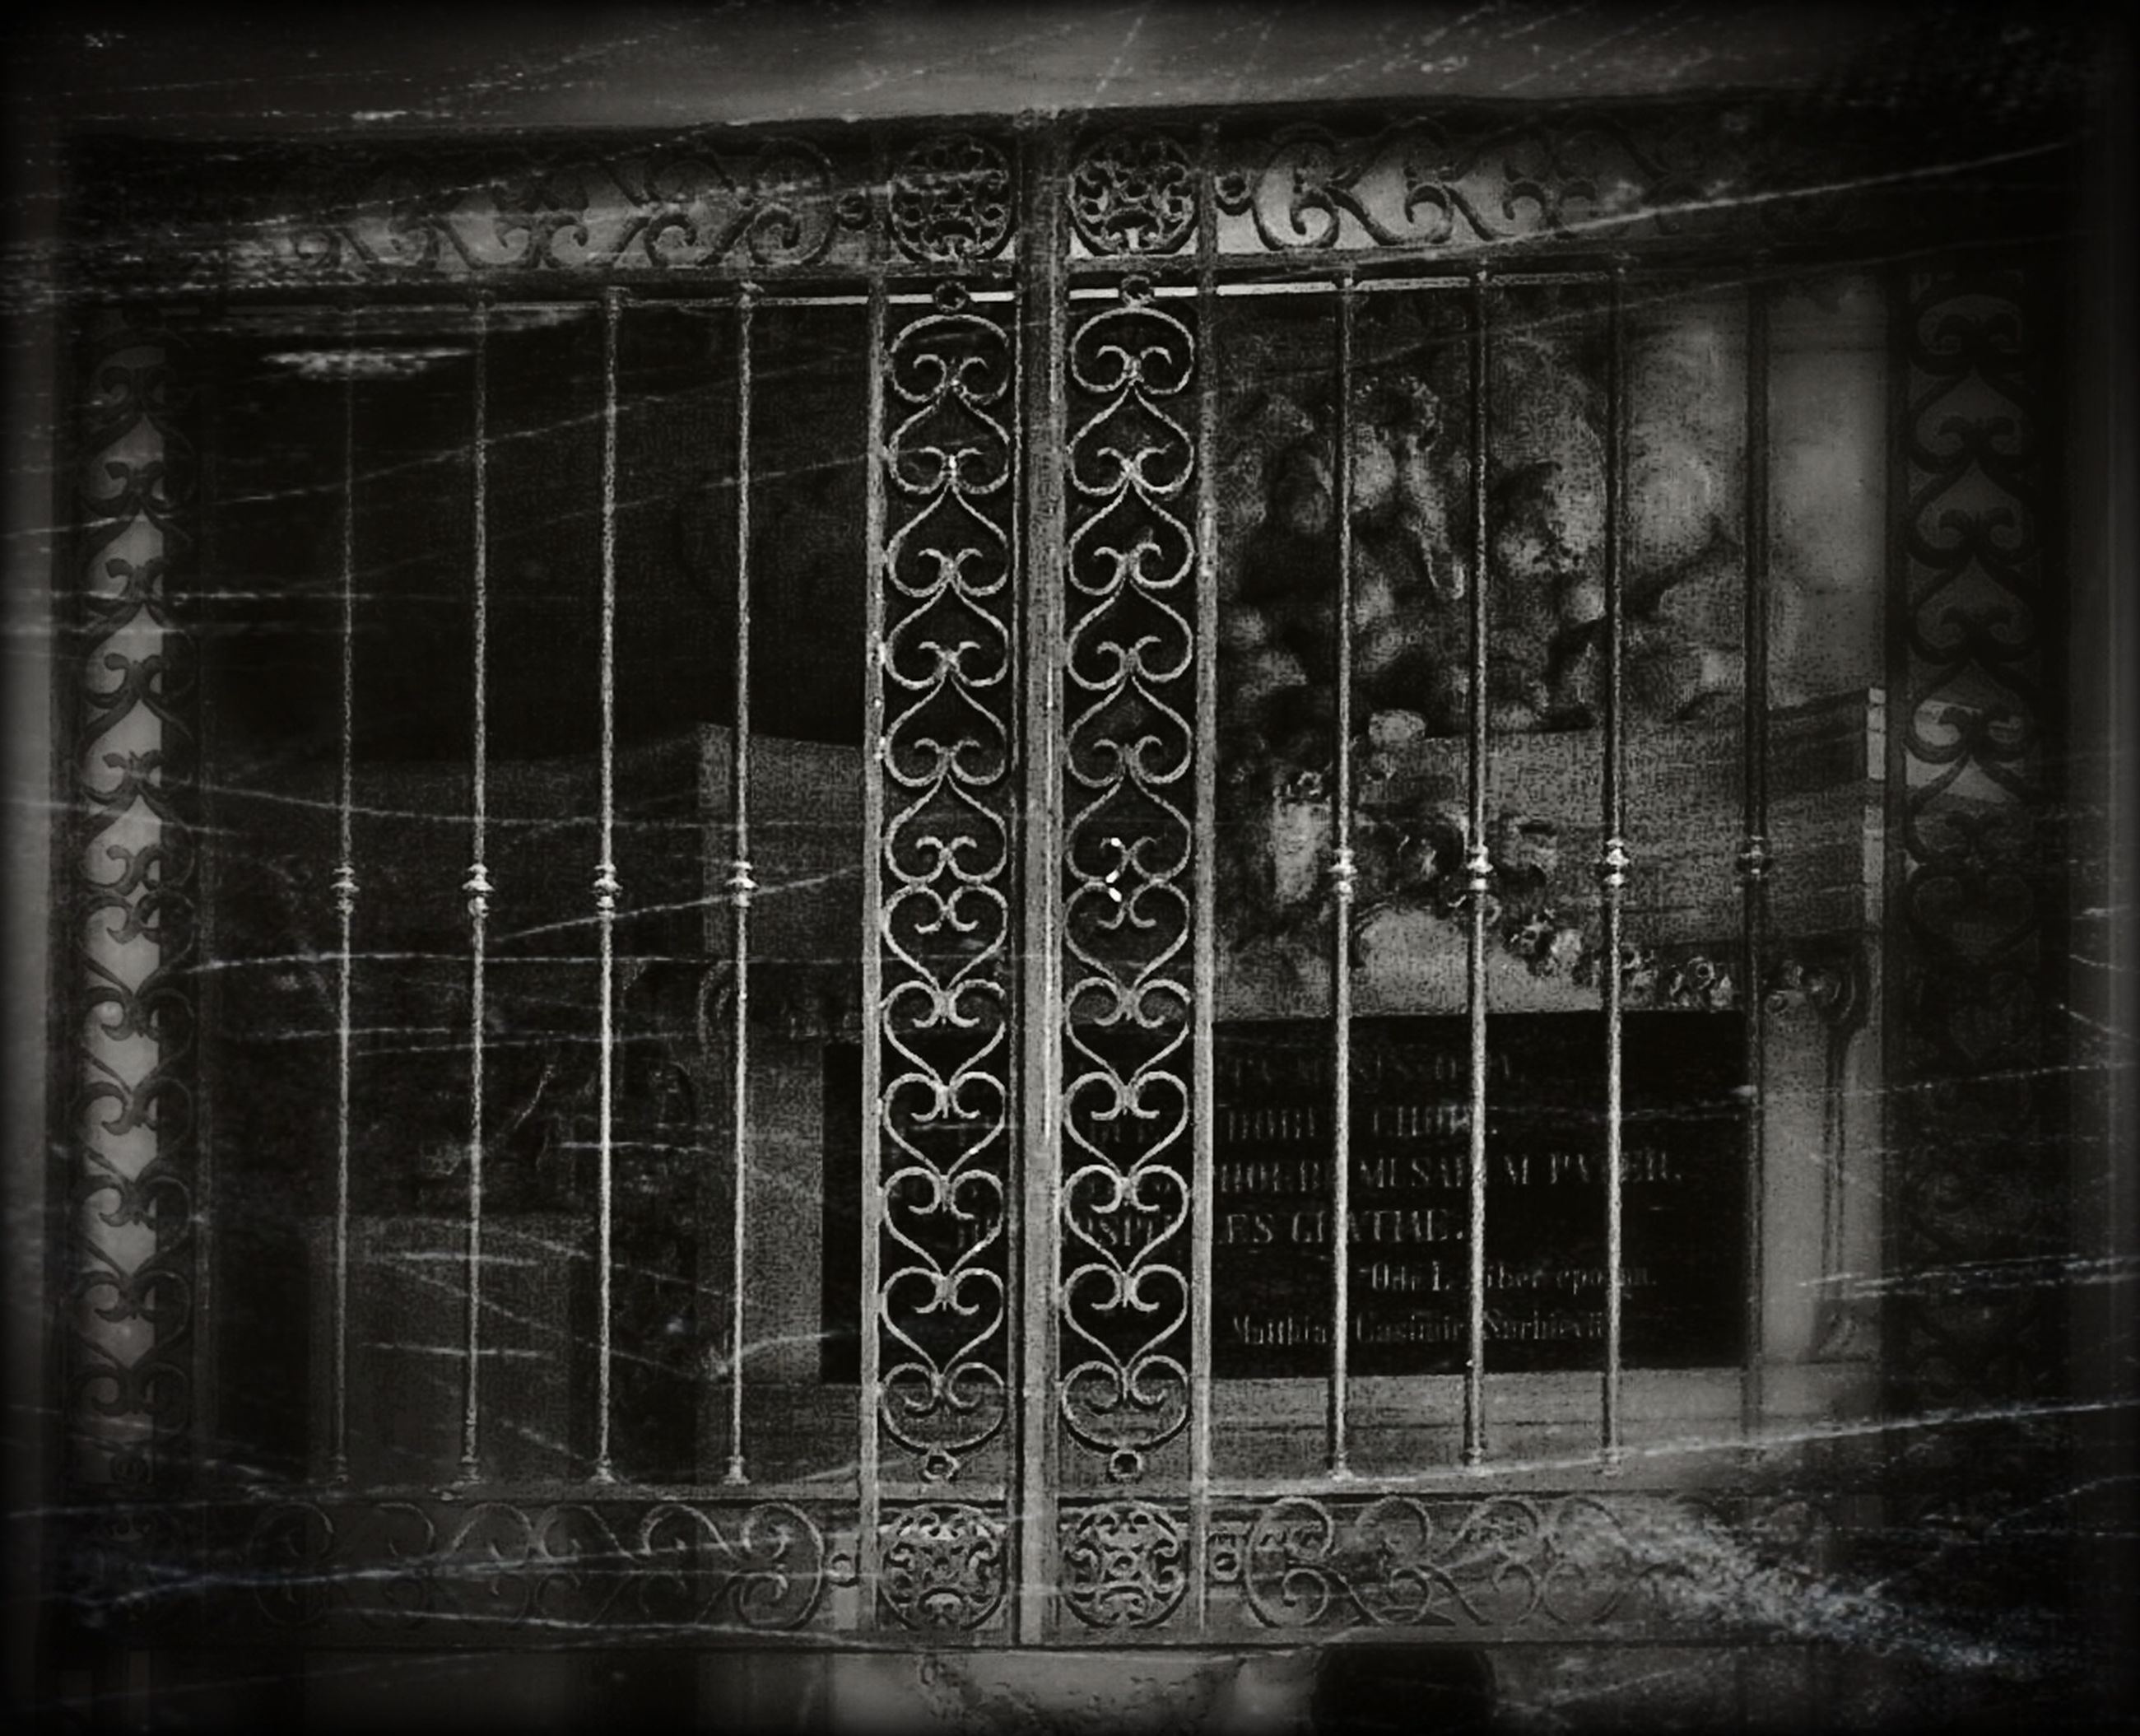 indoors, window, built structure, architecture, transfer print, closed, door, metal, metal grate, old, auto post production filter, entrance, house, safety, protection, gate, abandoned, glass - material, pattern, wall - building feature